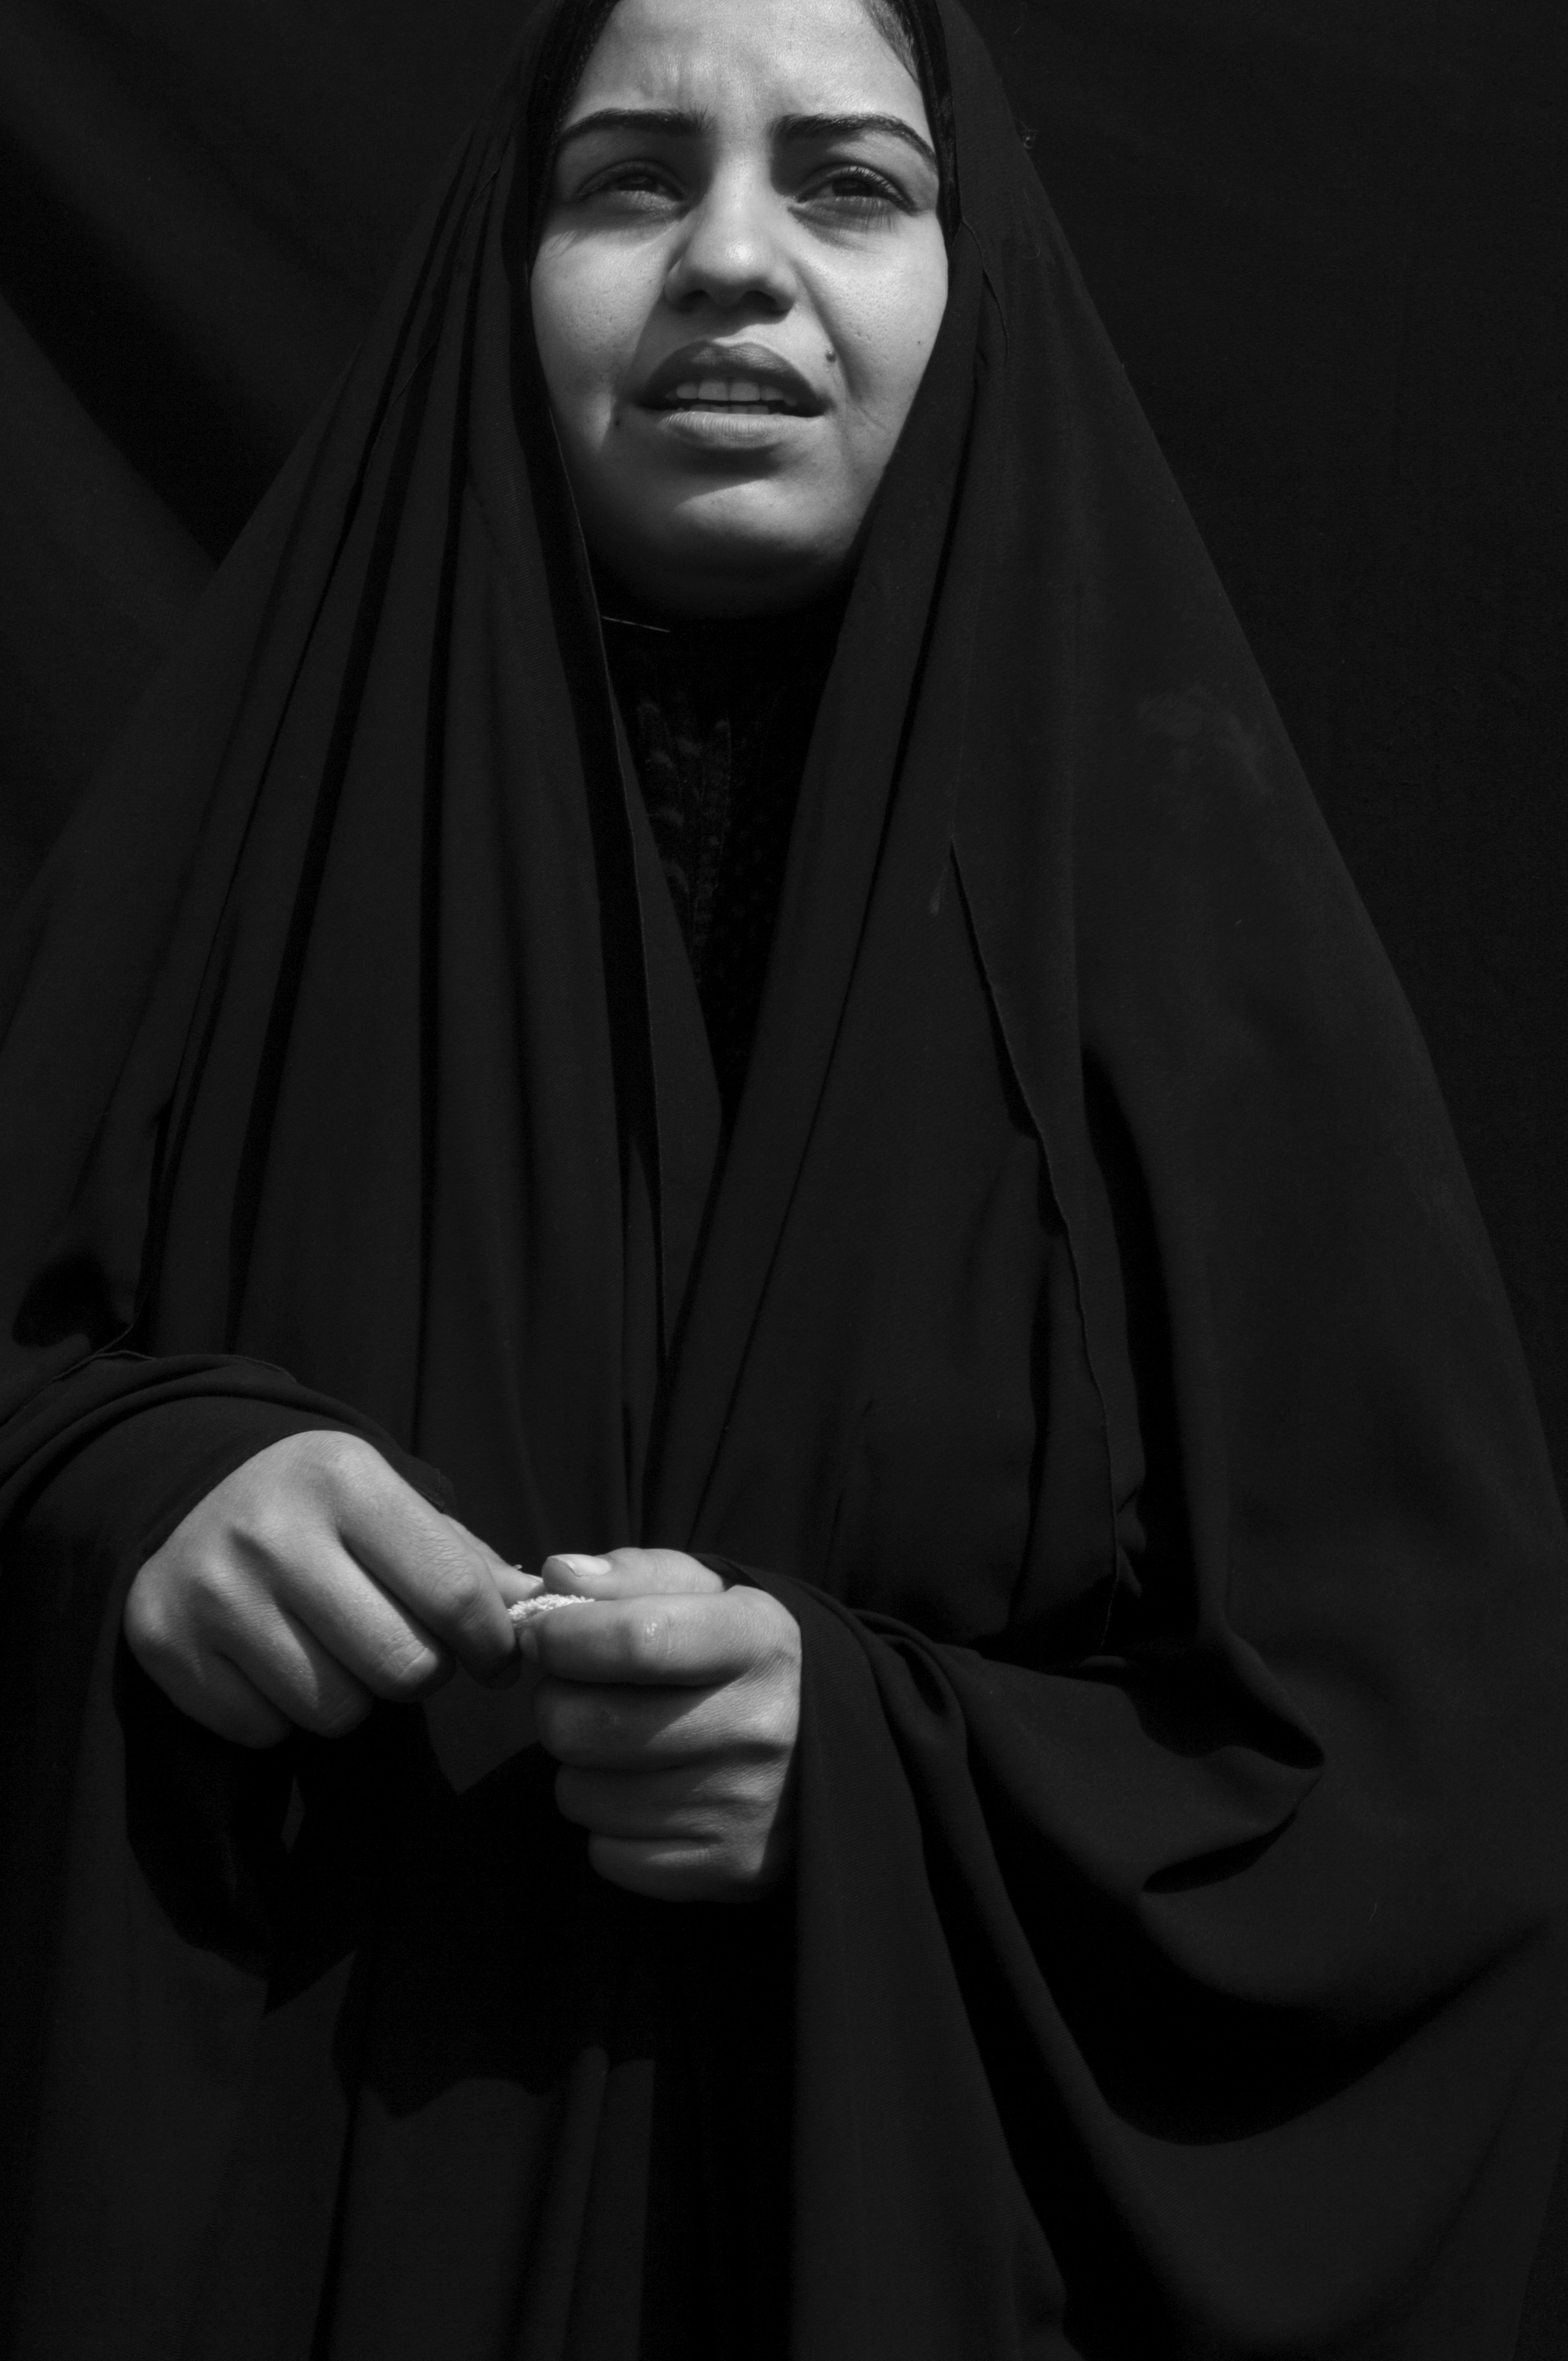 Sahar Ashour Nema, a Shi'ite refugee in Baghdad's al-Shulla neighborhood. She and her family were driven out of their home by their Sunni neighbors. Two years earlier her husband was killed by Sunni terrorists, Baghdad, March 2, 2006.